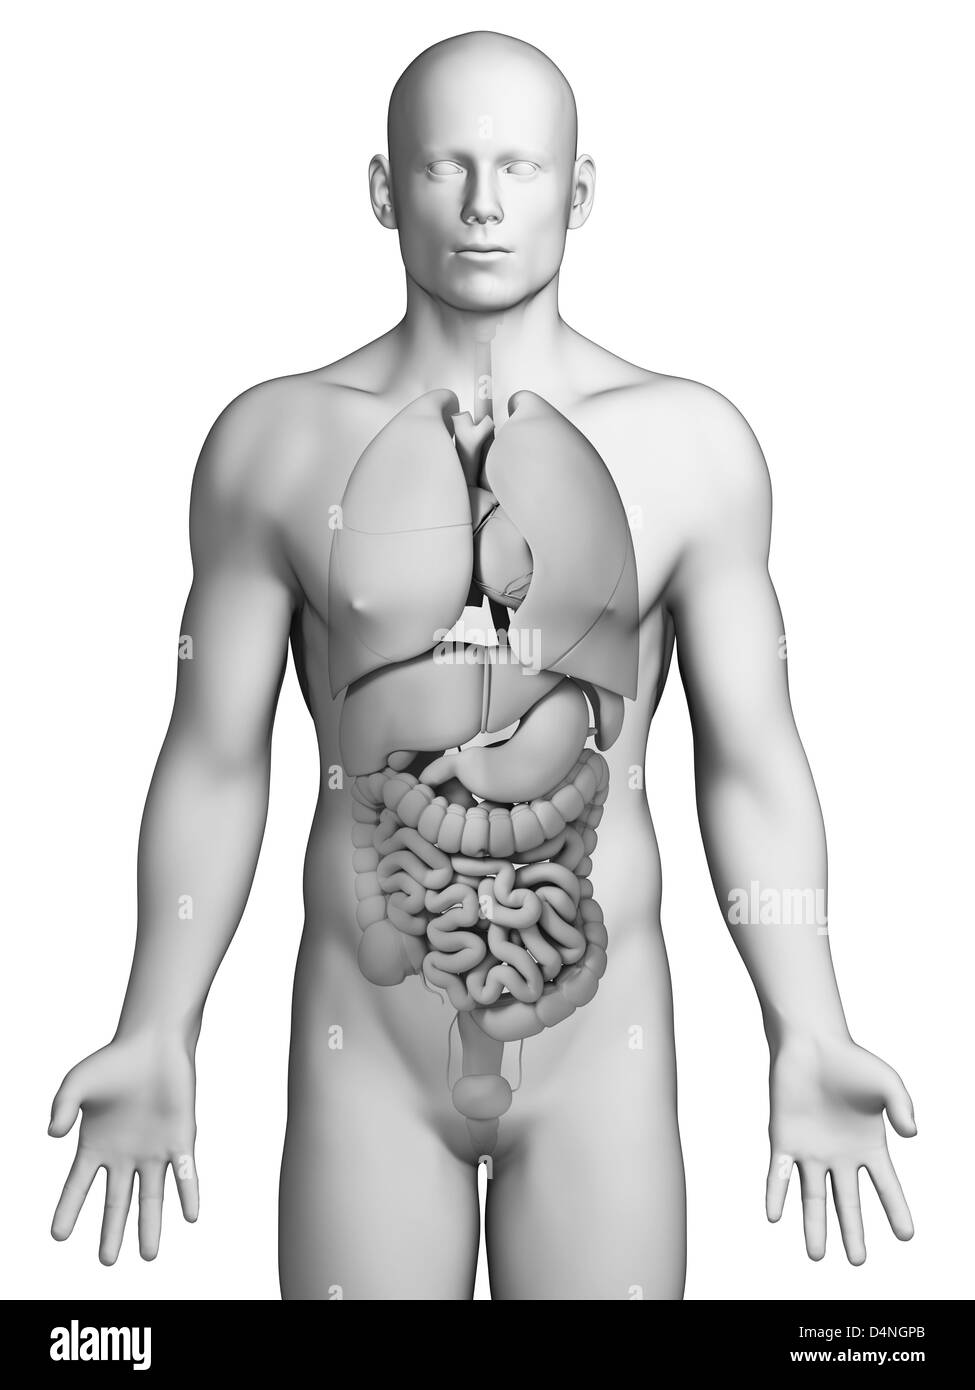 Male Anatomy Black and White Stock Photos & Images - Alamy